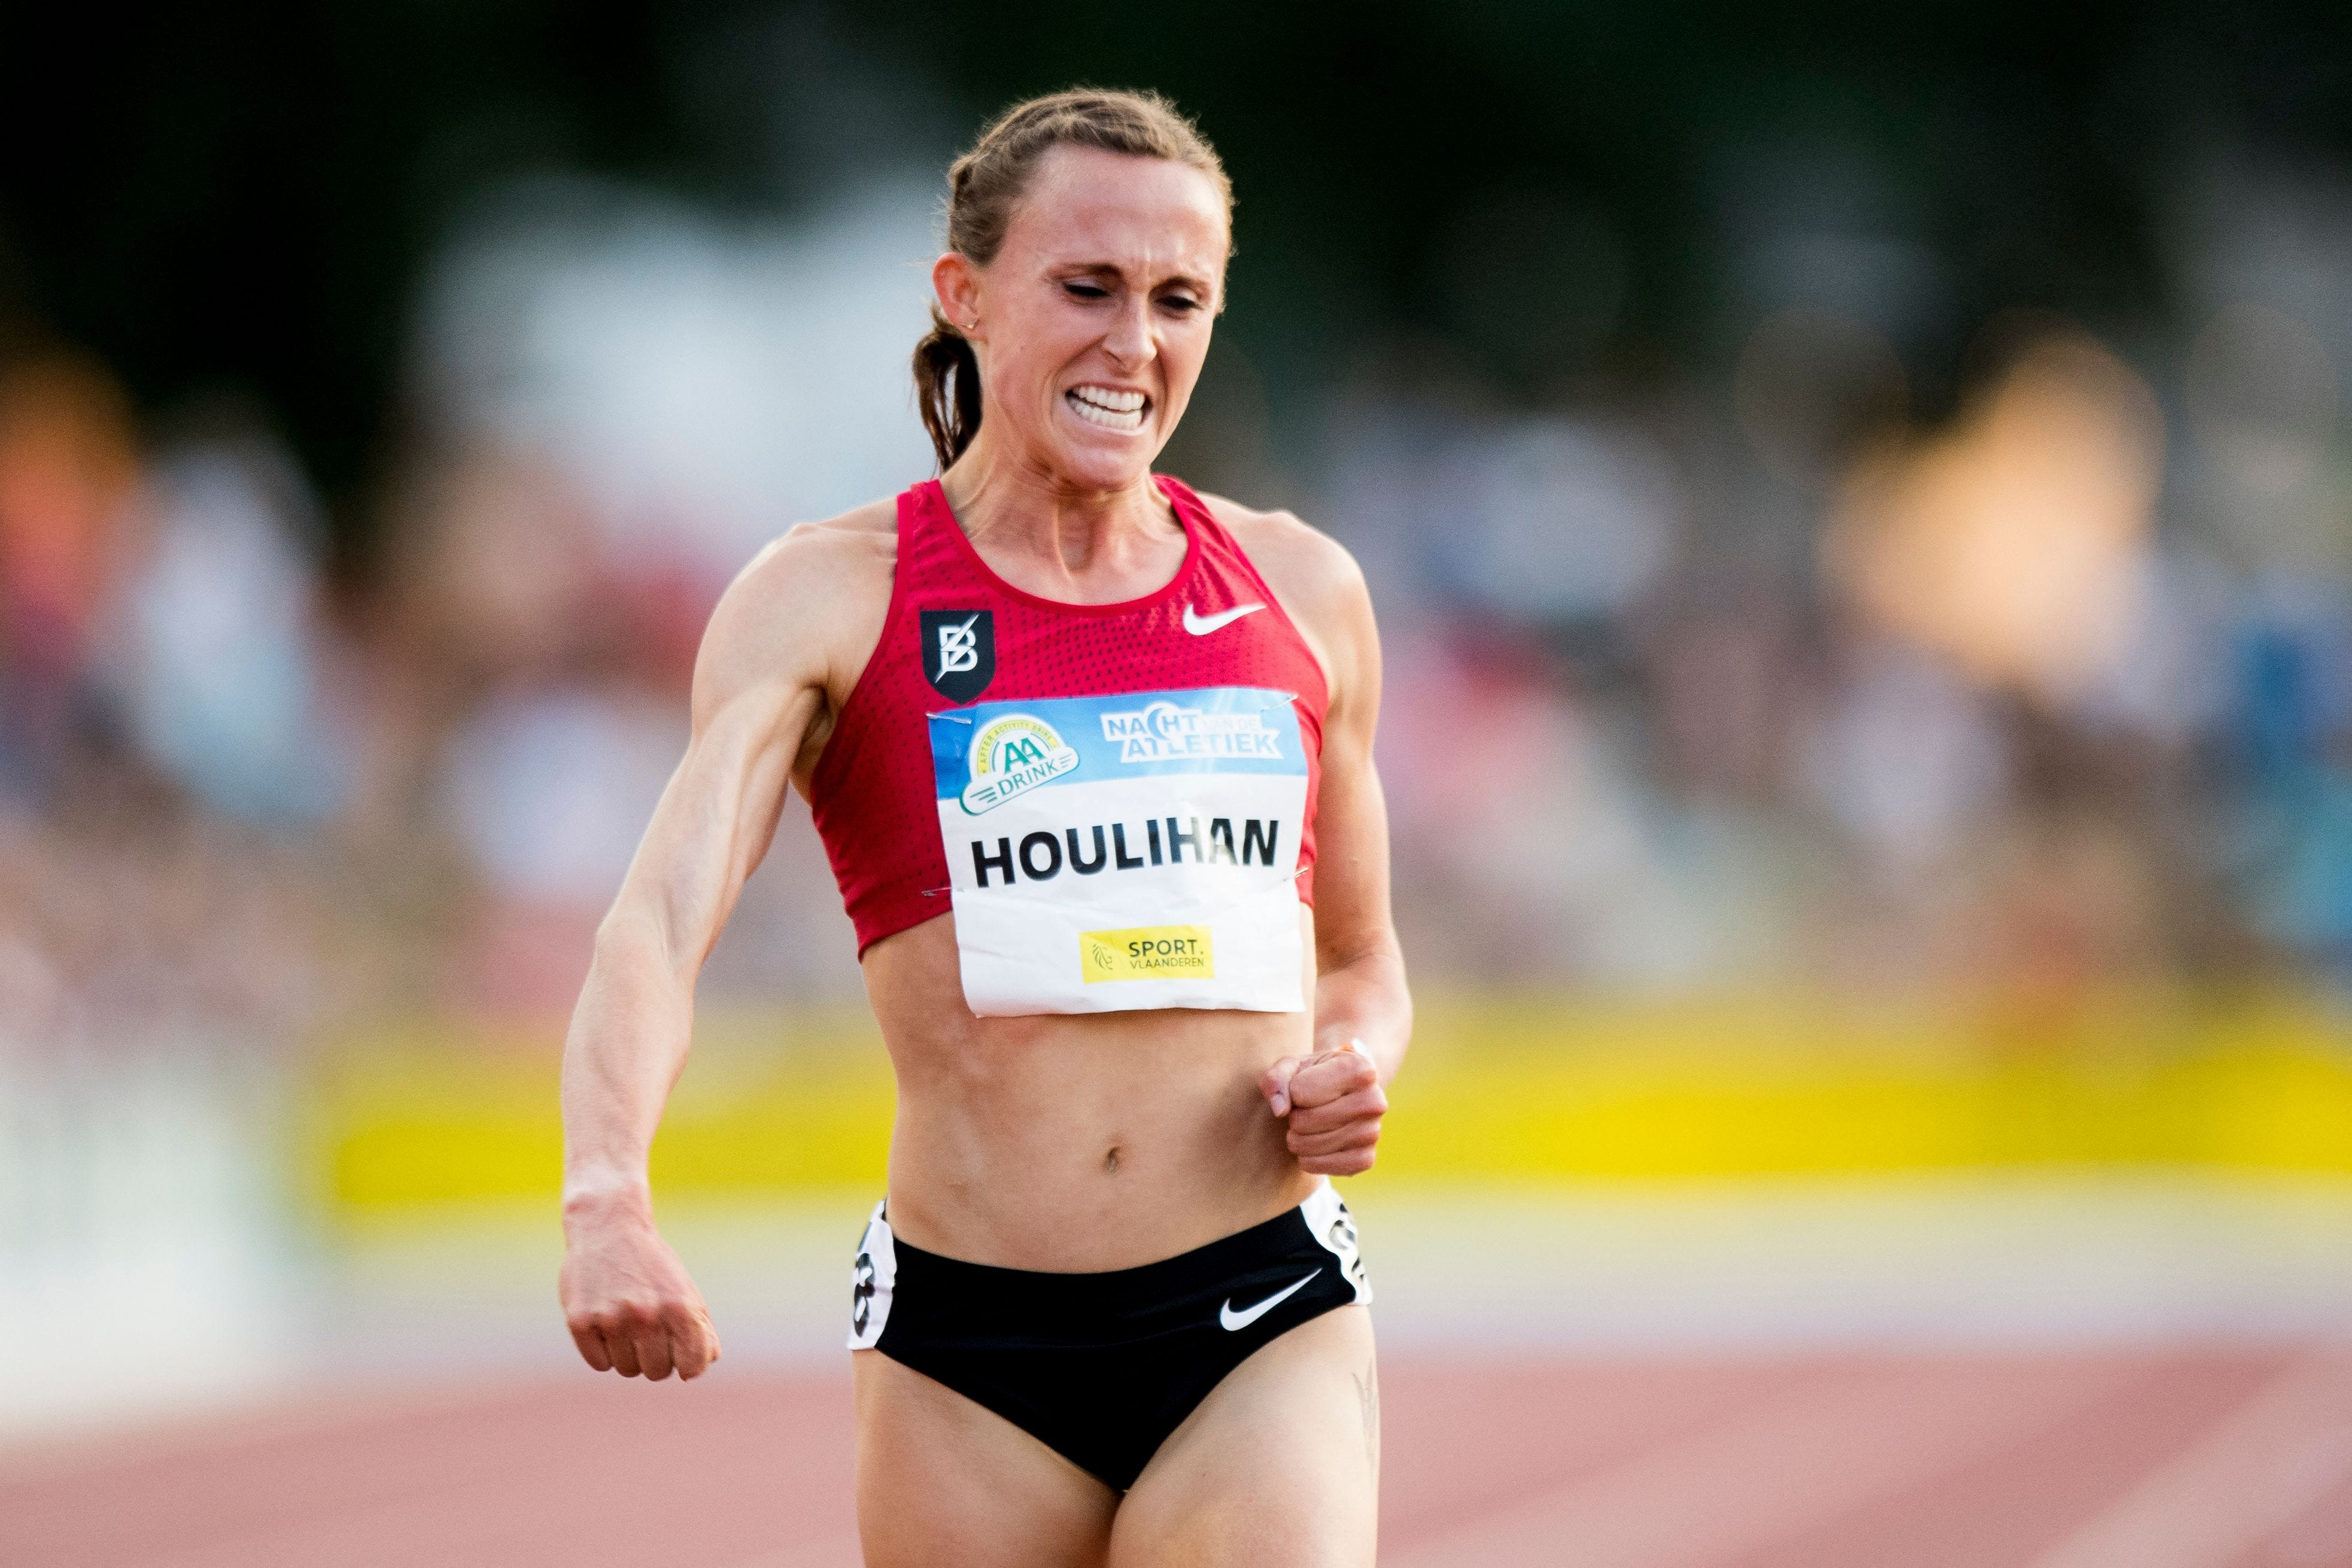 Opinion: Allowing Shelby Houlihan to run while banned destroys American credibility